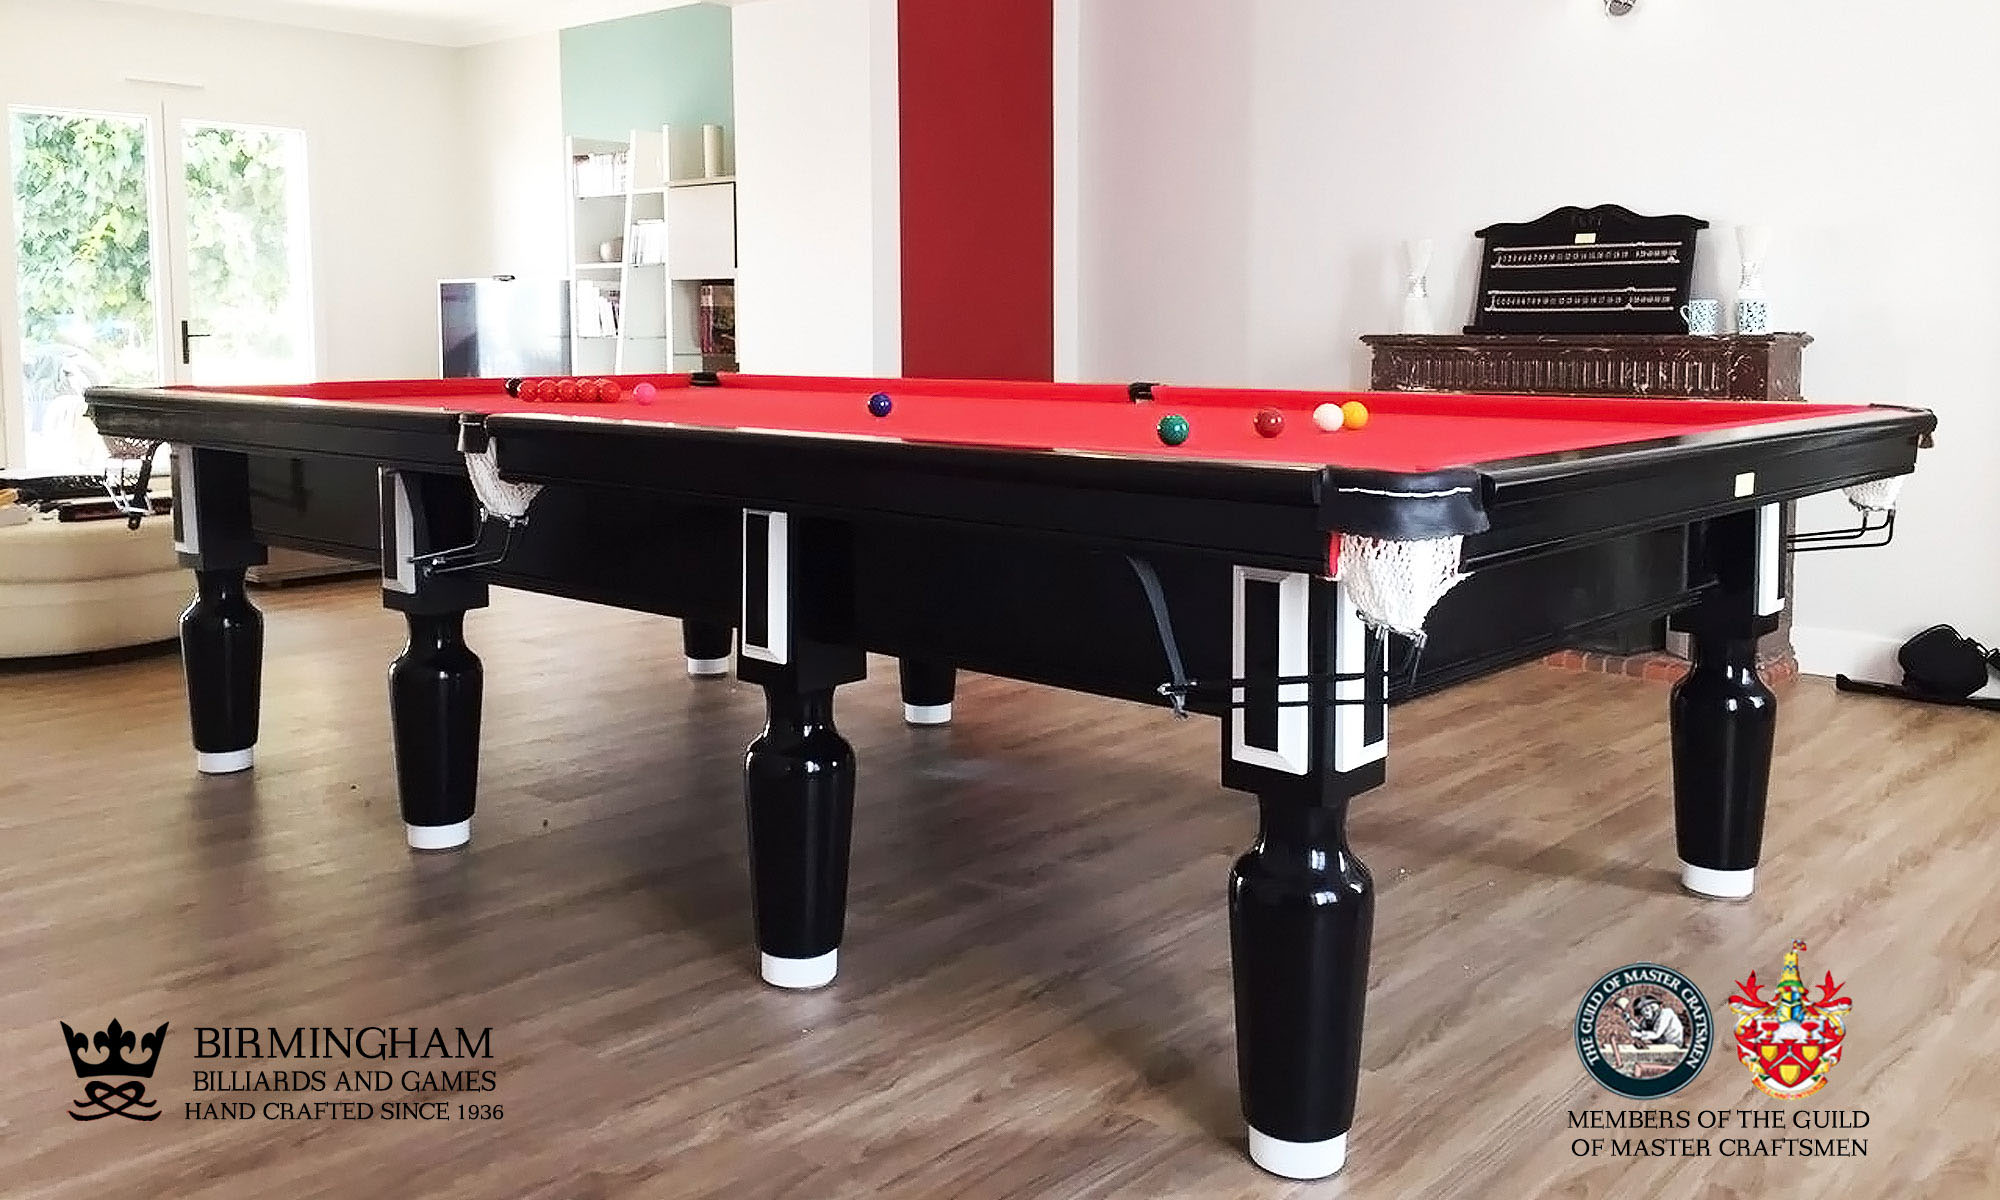 The Paris snooker table